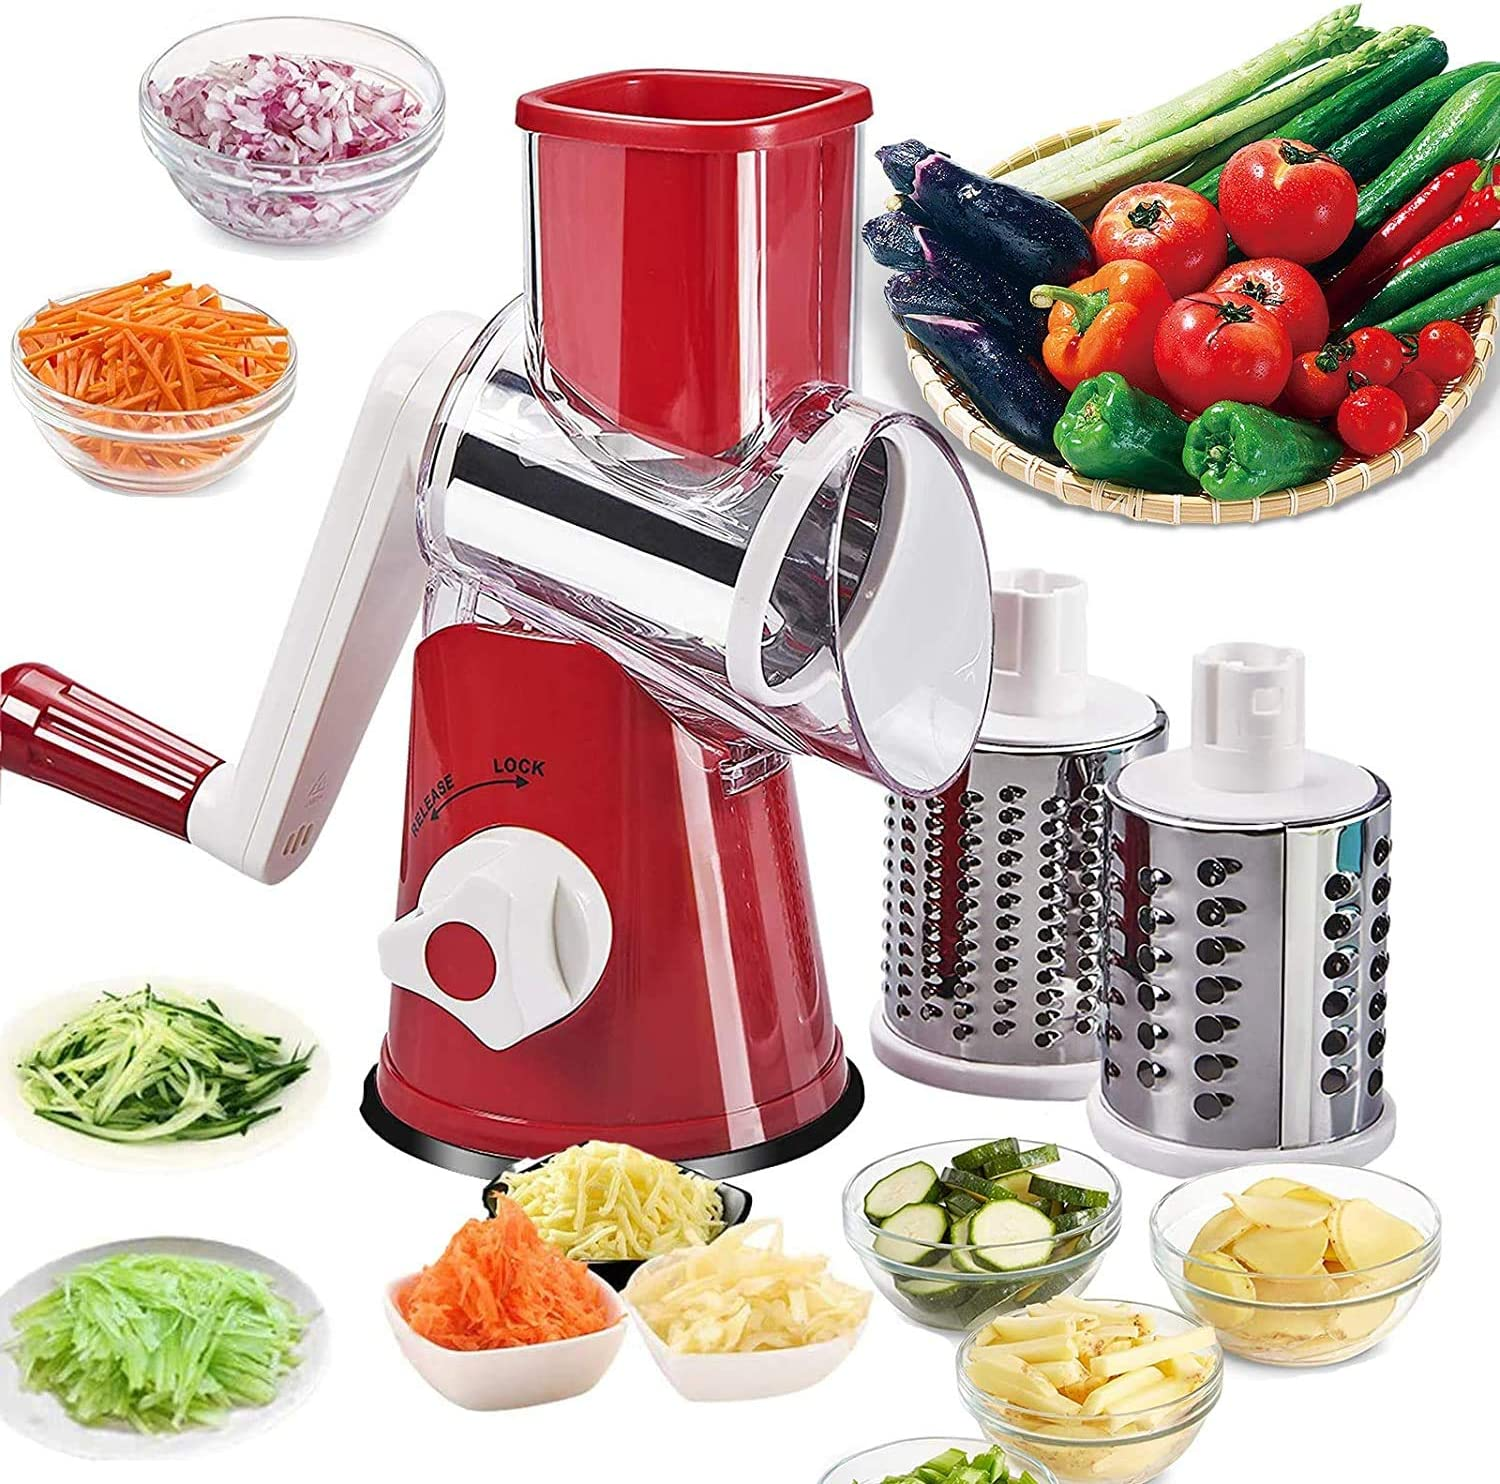 Vegetable Slicer, Manual Rotary Grinder, Hand-operated Kitchen Appliance for Dicing, Slicing and Chopping Food,with Powerful Suction Cup, Vegetables, Fruits, Grinder, Cheese Chopper (Red)